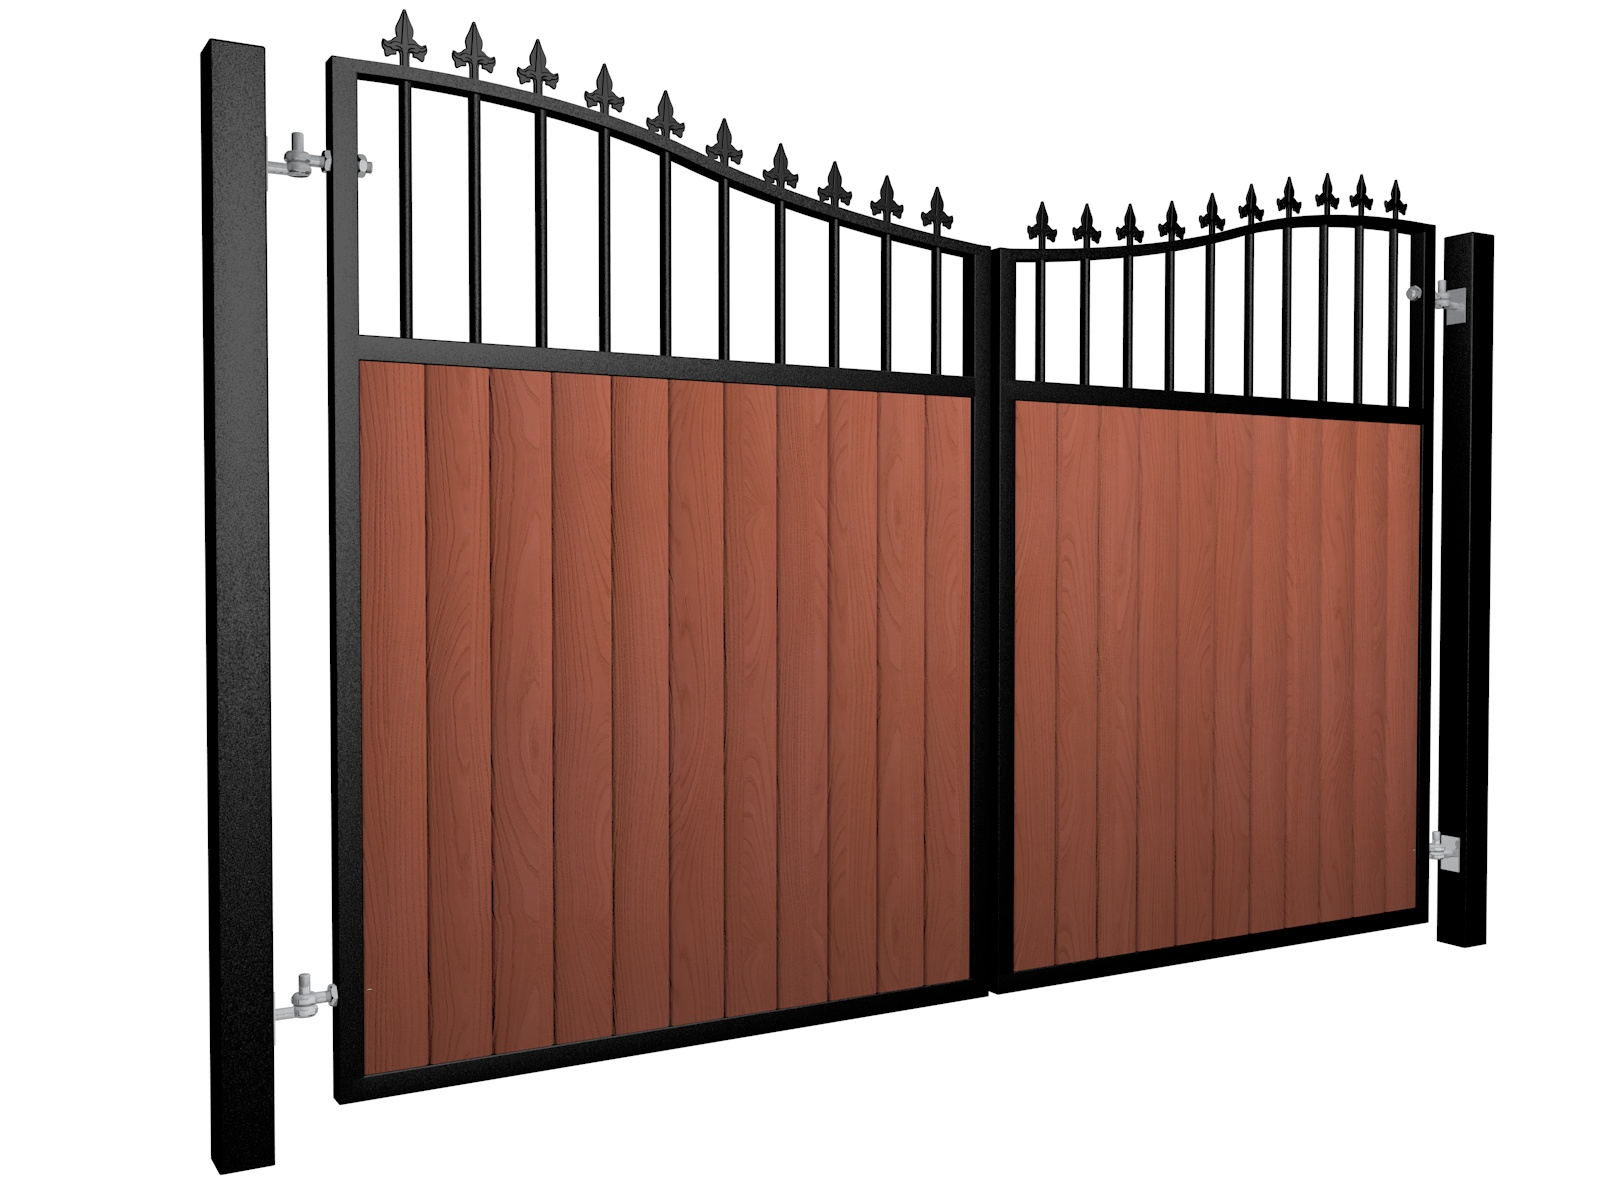 metal framed wood fill bow top automated electric gate with finials